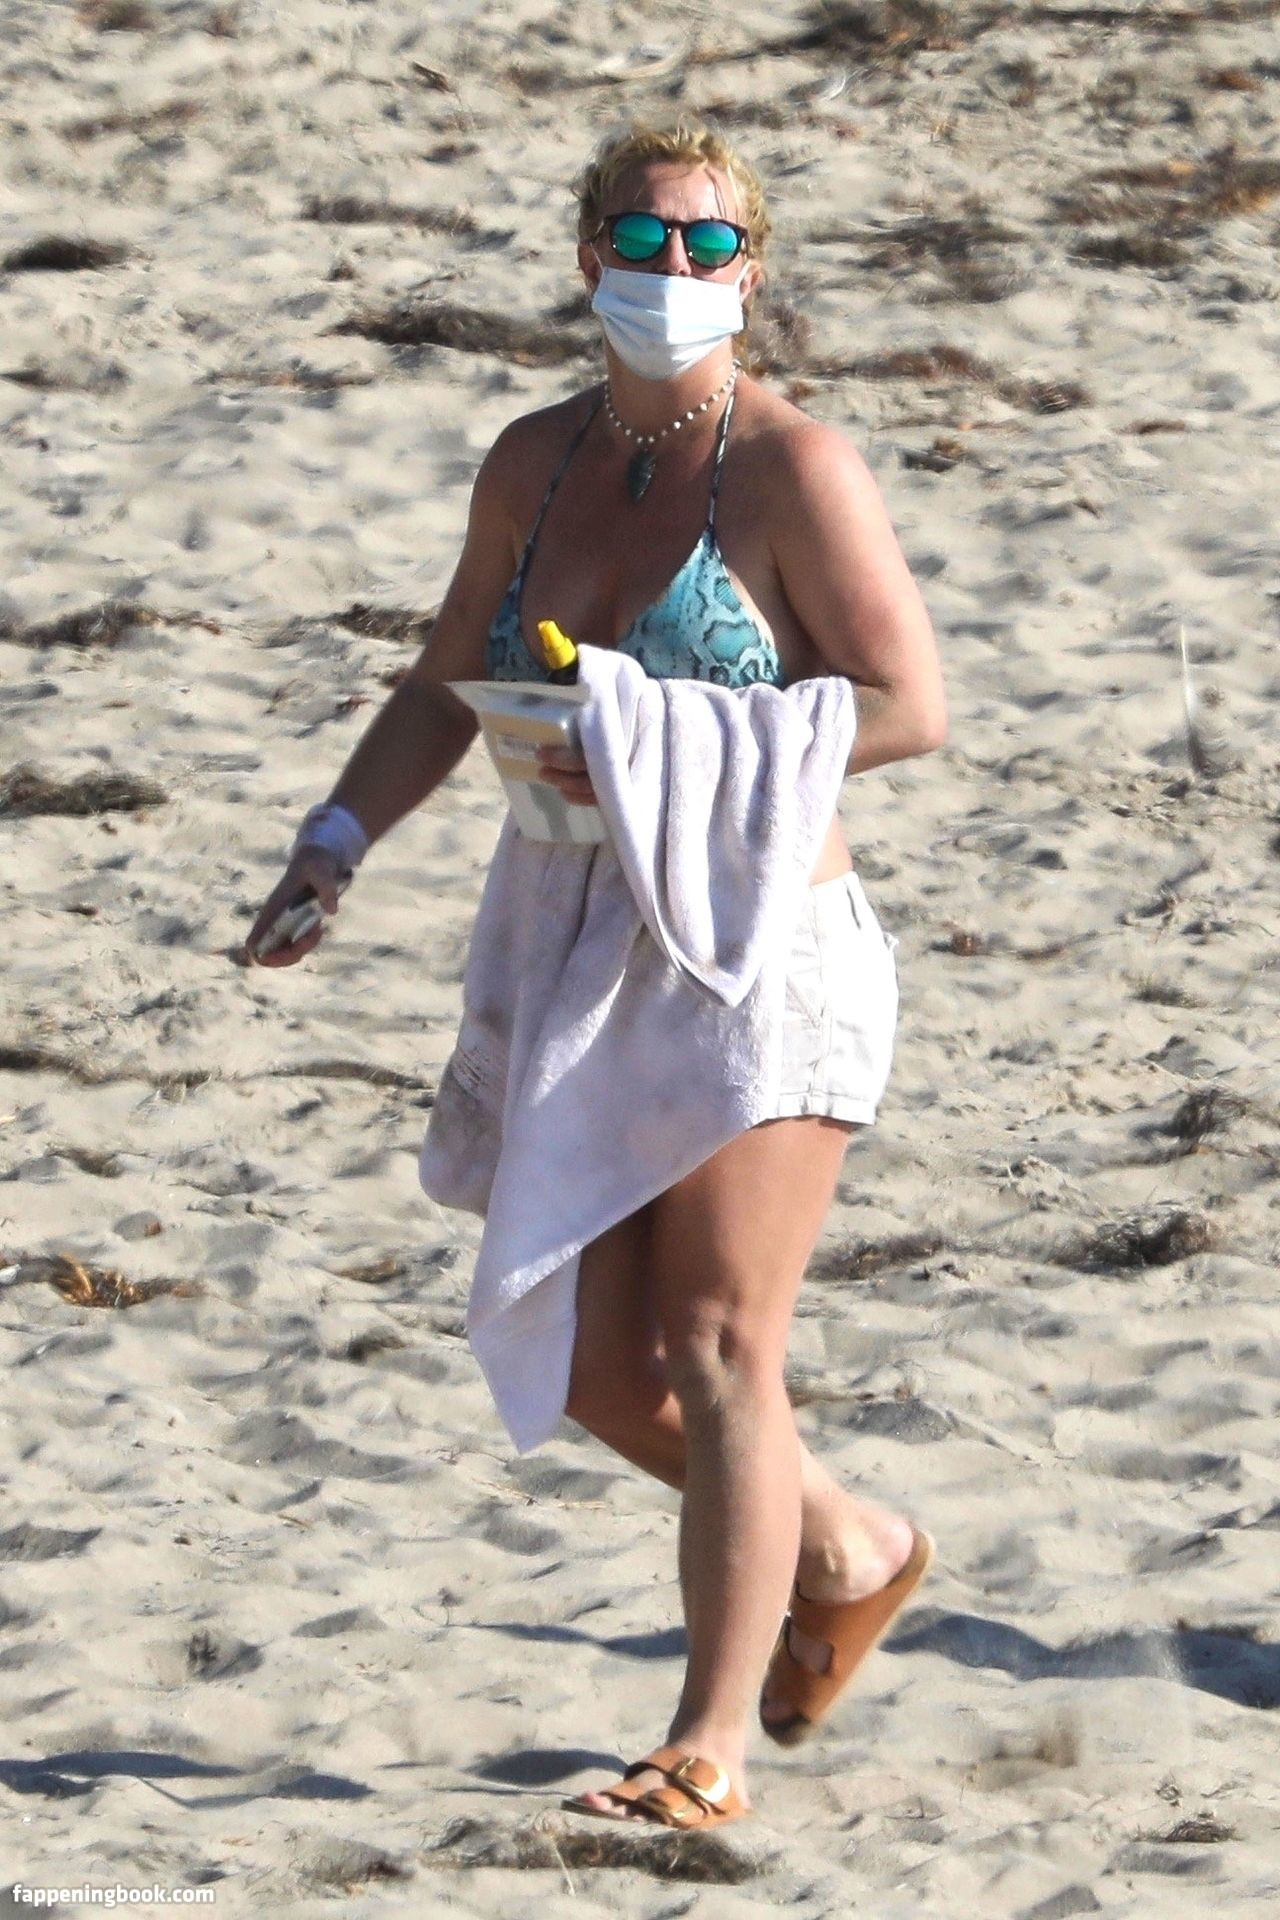 Britney Spears Nude And Without Panties (72 Photos) | #The